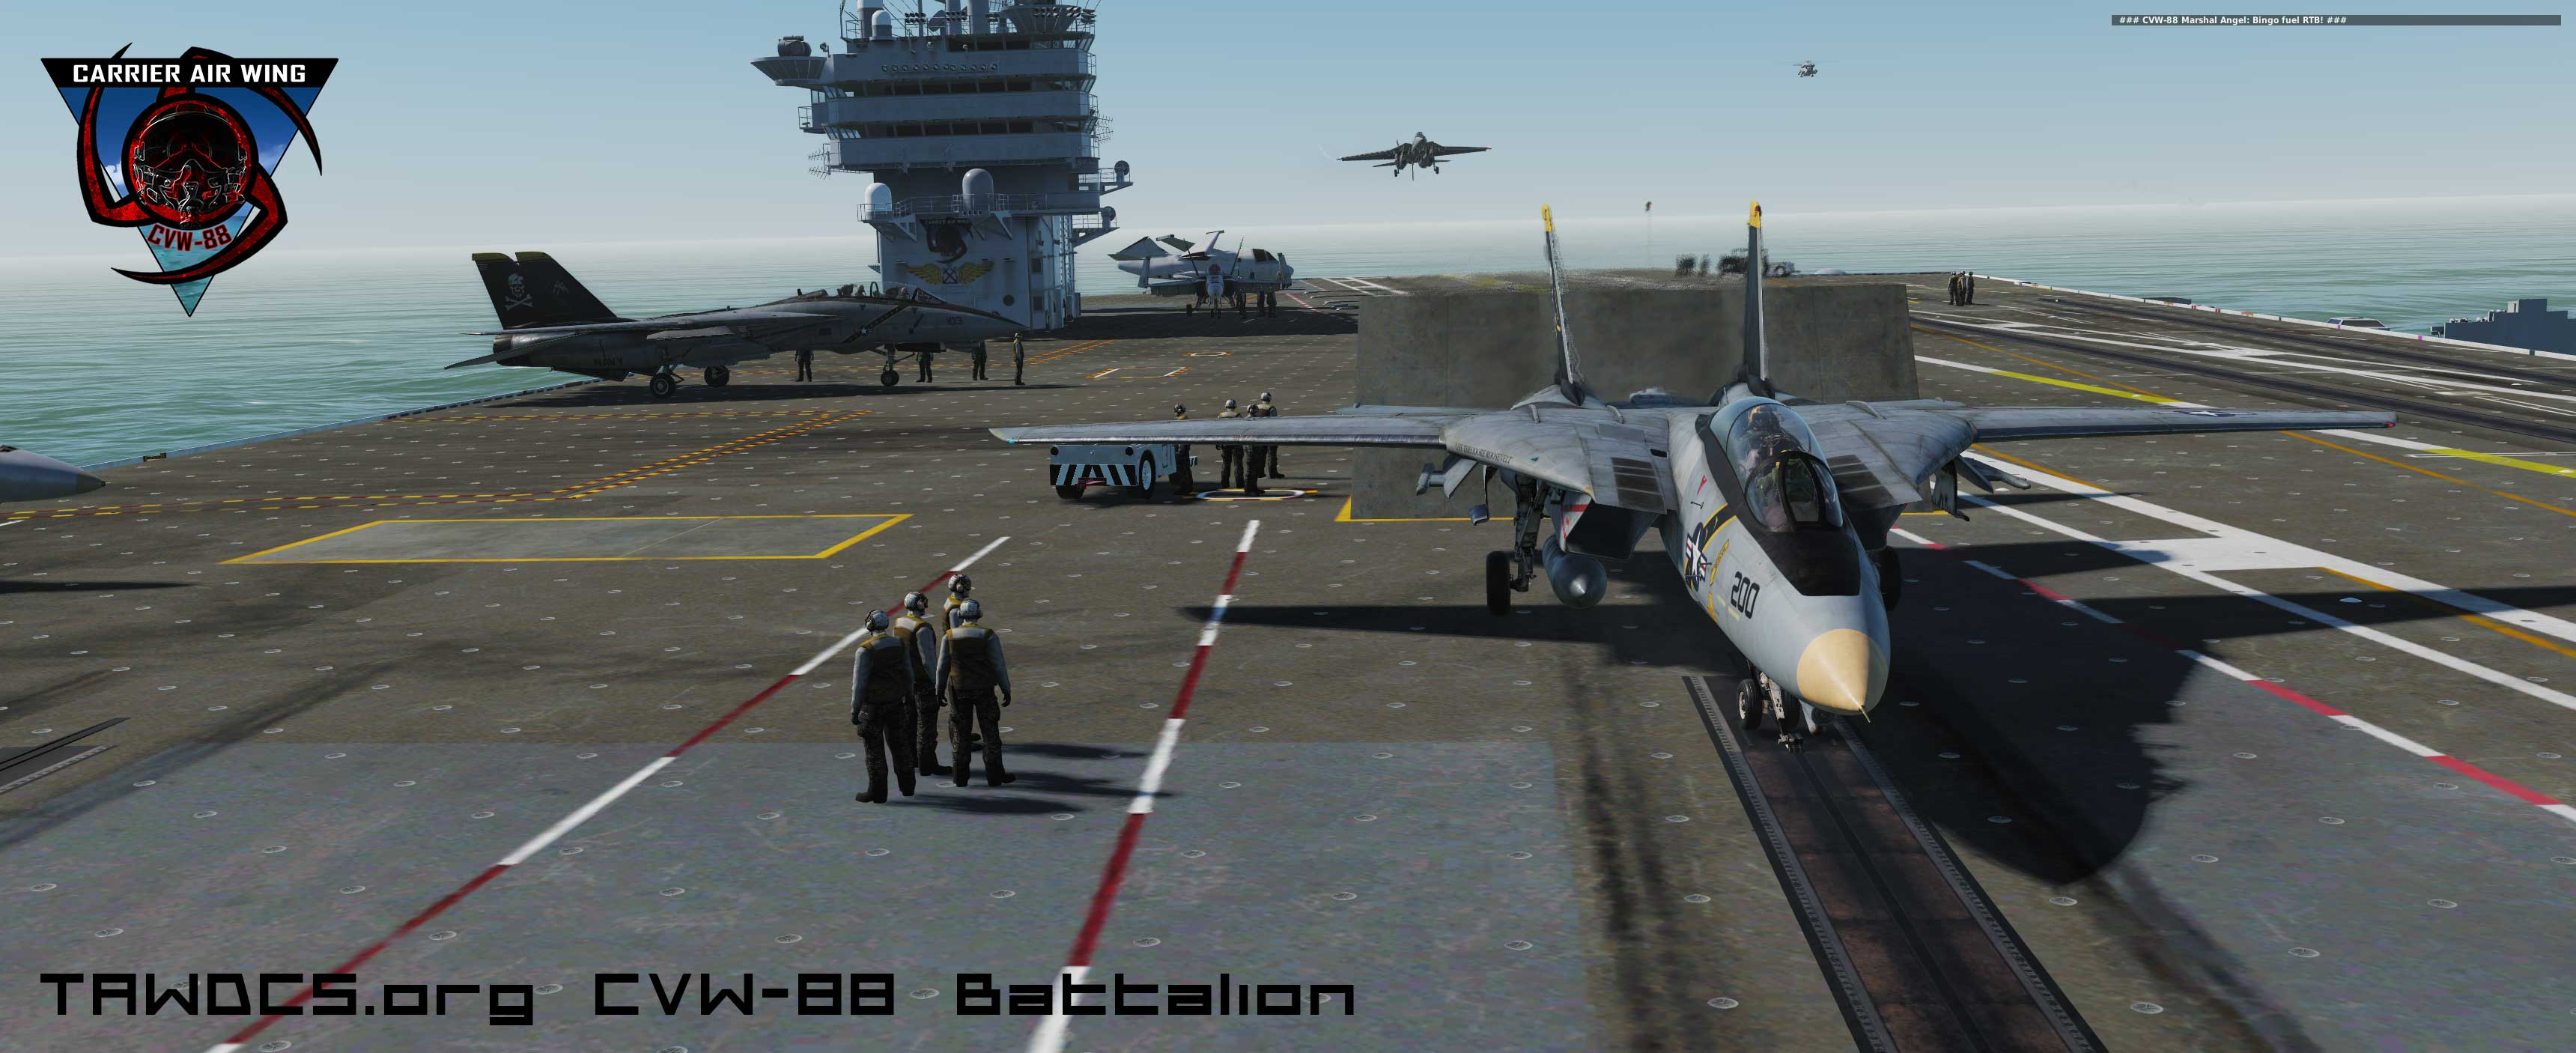 TAWDCS org - CVW-88 Battalion is looking for serious pilots